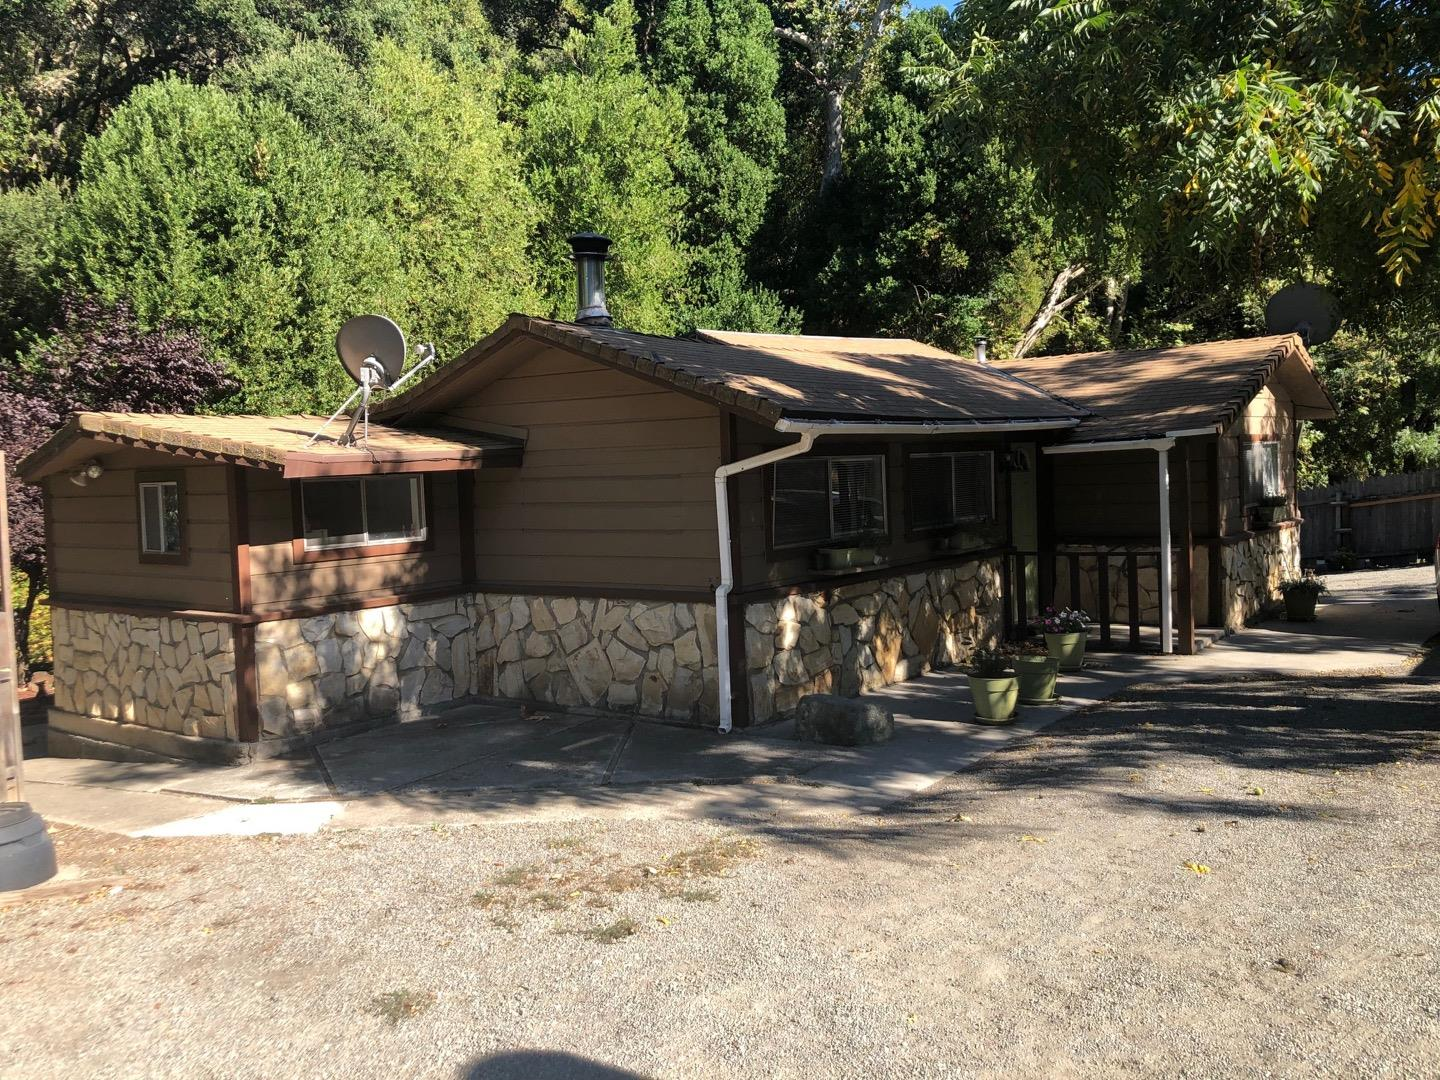 1286 Metcalf RD, Evergreen in Santa Clara County, CA 95138 Home for Sale